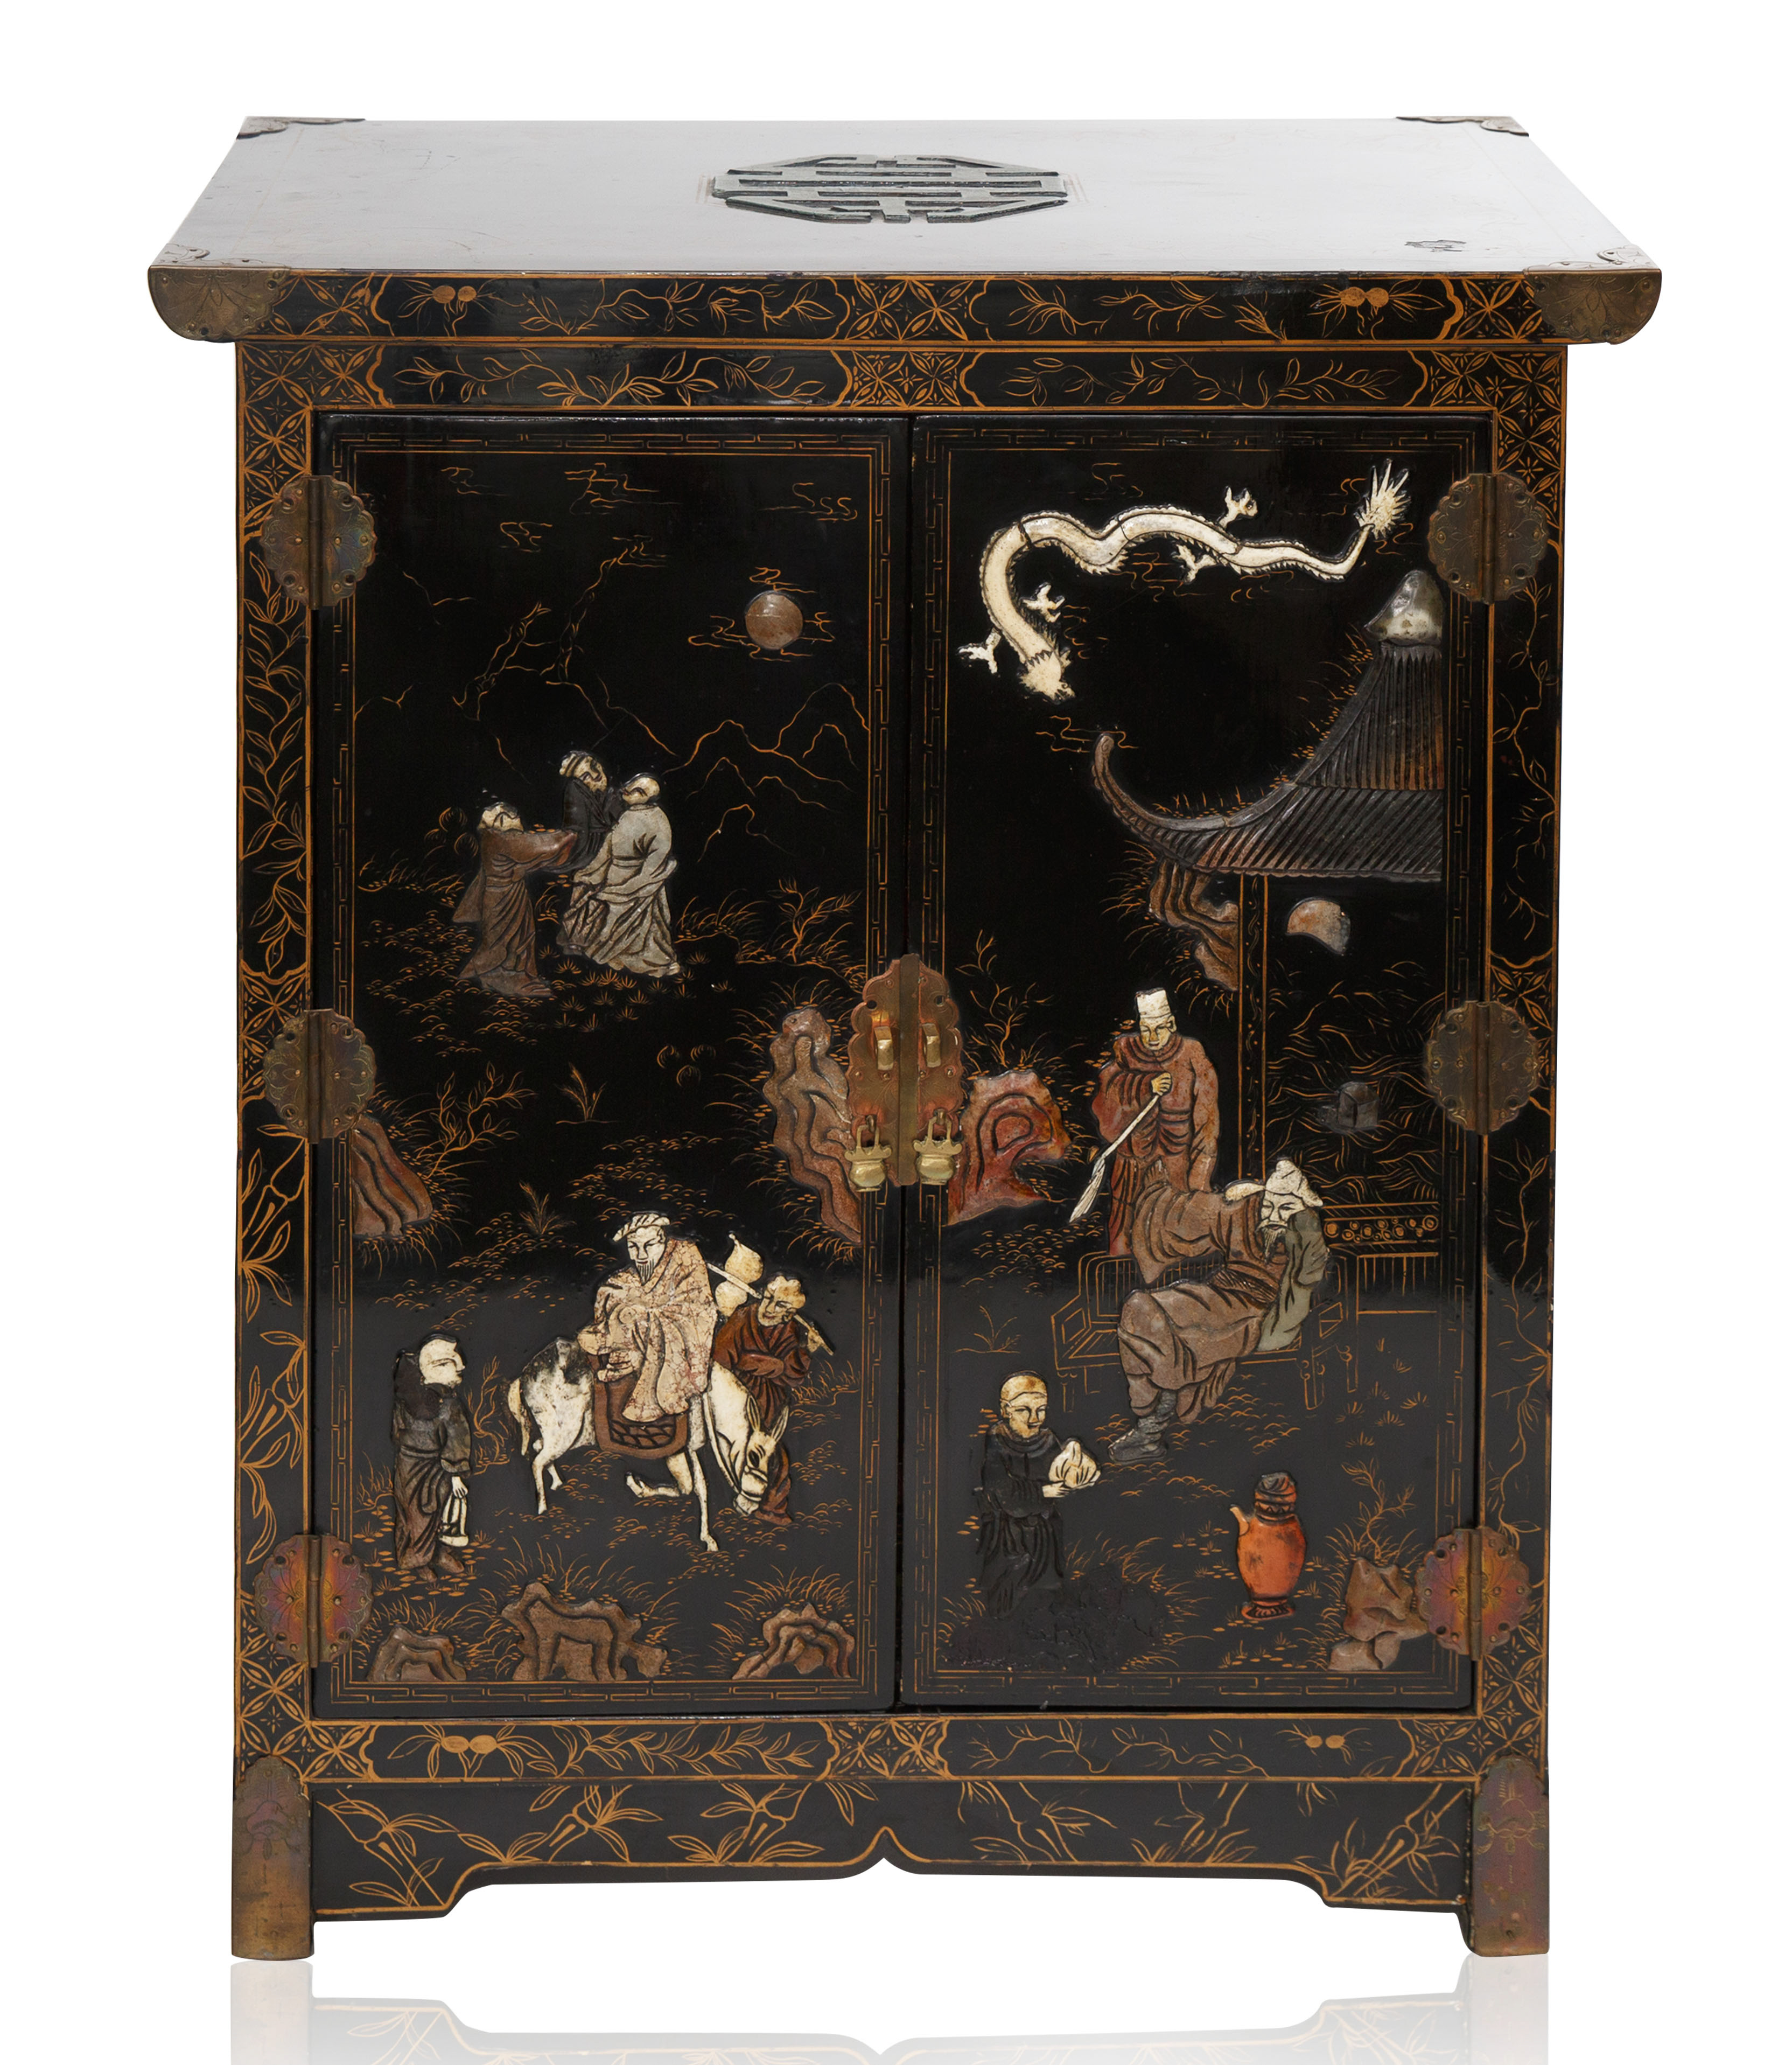 A MEIJI PERIOD JAPANESE EBONISED LACQUER CABINET - Image 2 of 4